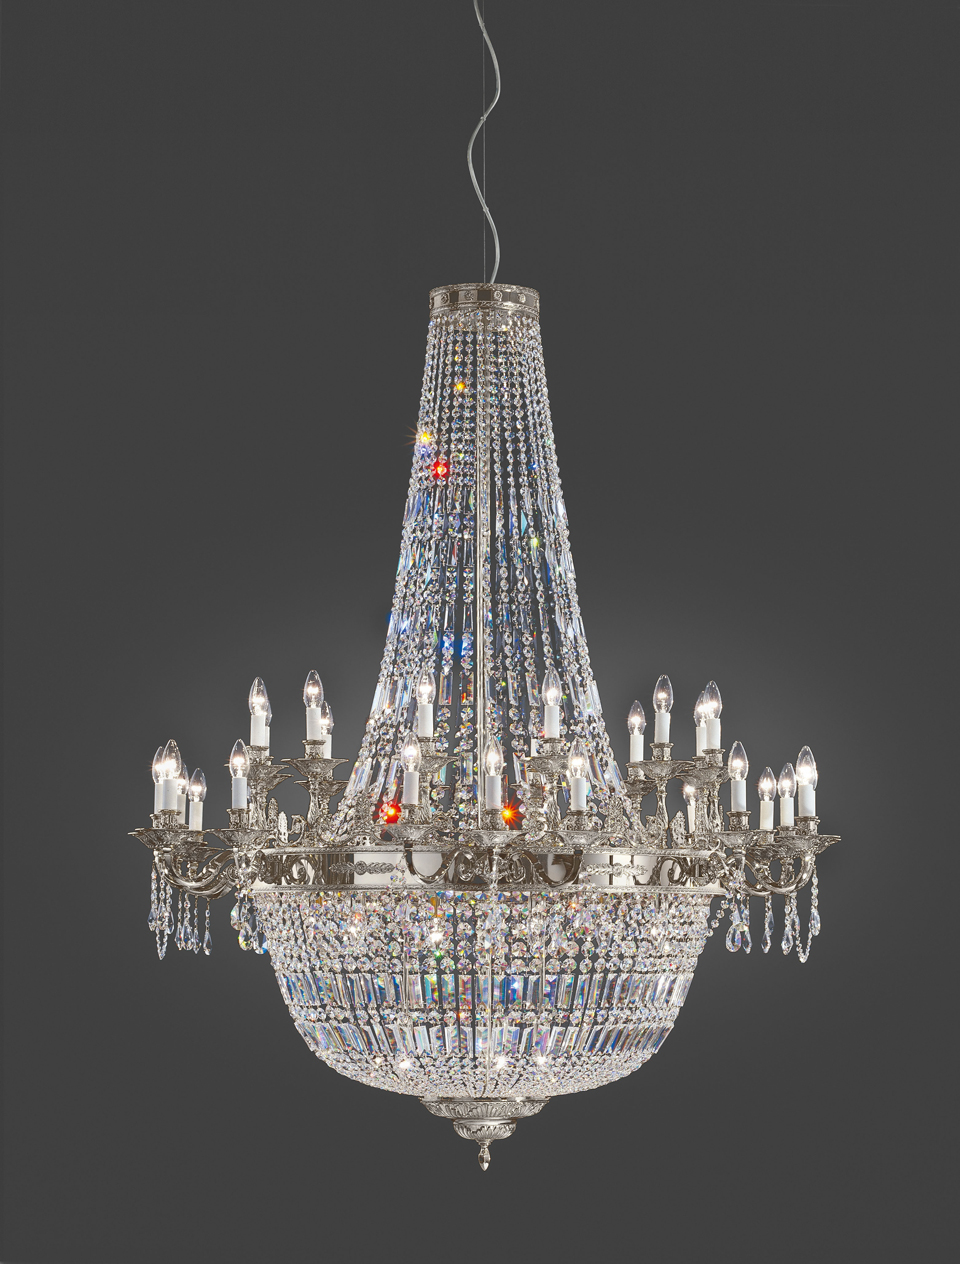 8 R 10 8 Light Crystal Chandelier With Swarovski 26 X 31 King S Chandelier Co